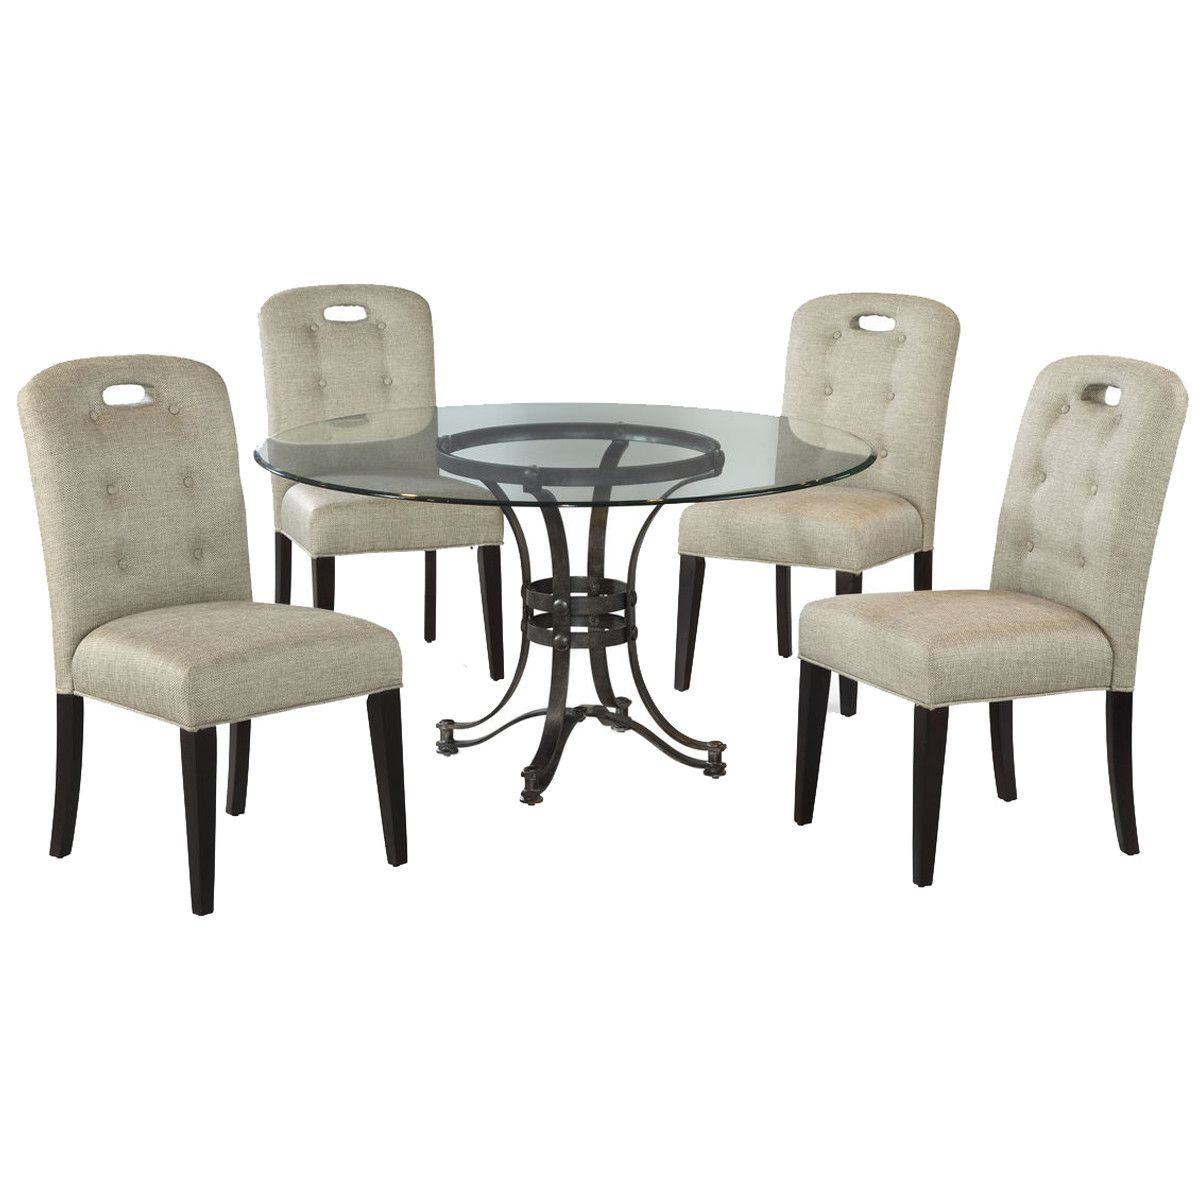 Bassett mirror company carnaby round cocktail leaf new home s - Bassett Mirror Belgian Luxe Tempe Casual Dining Set